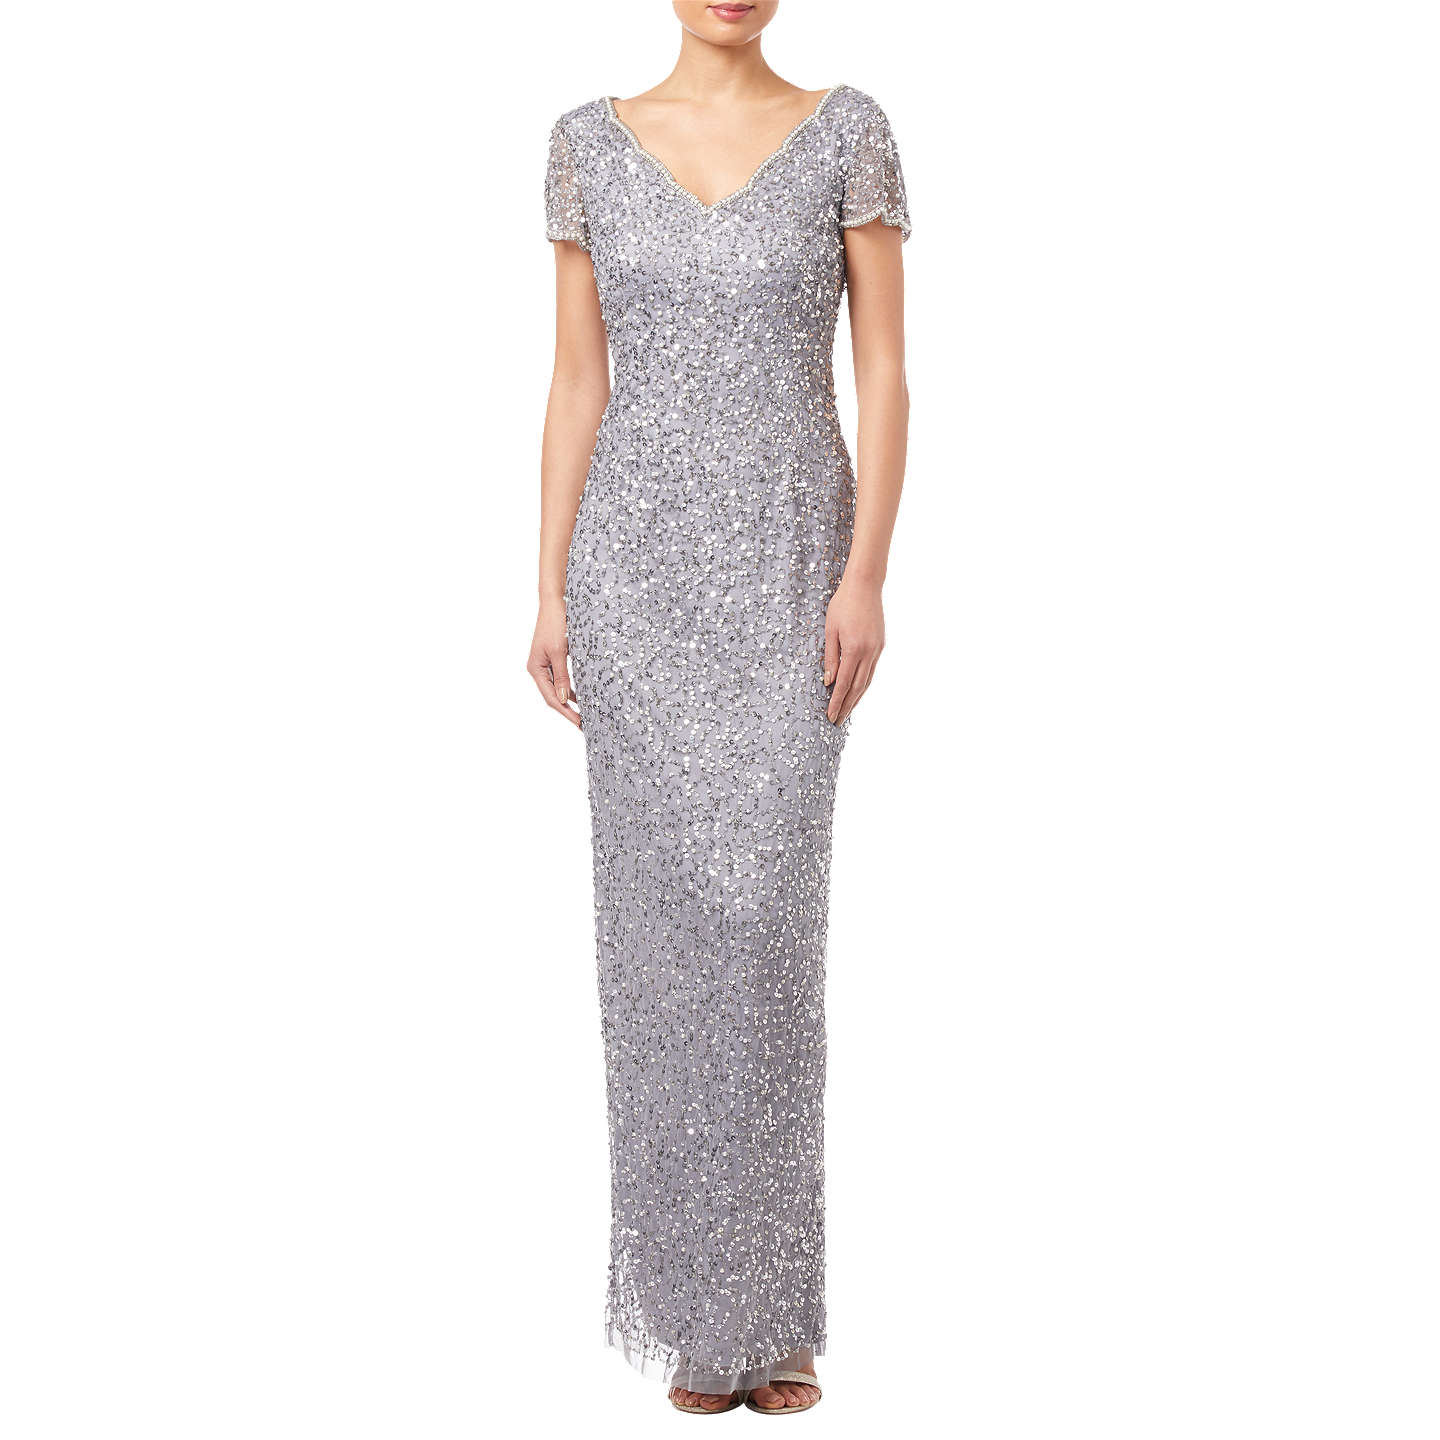 Adrianna Papell Petite Scallop Dress, Silver Grey by Adrianna Papell